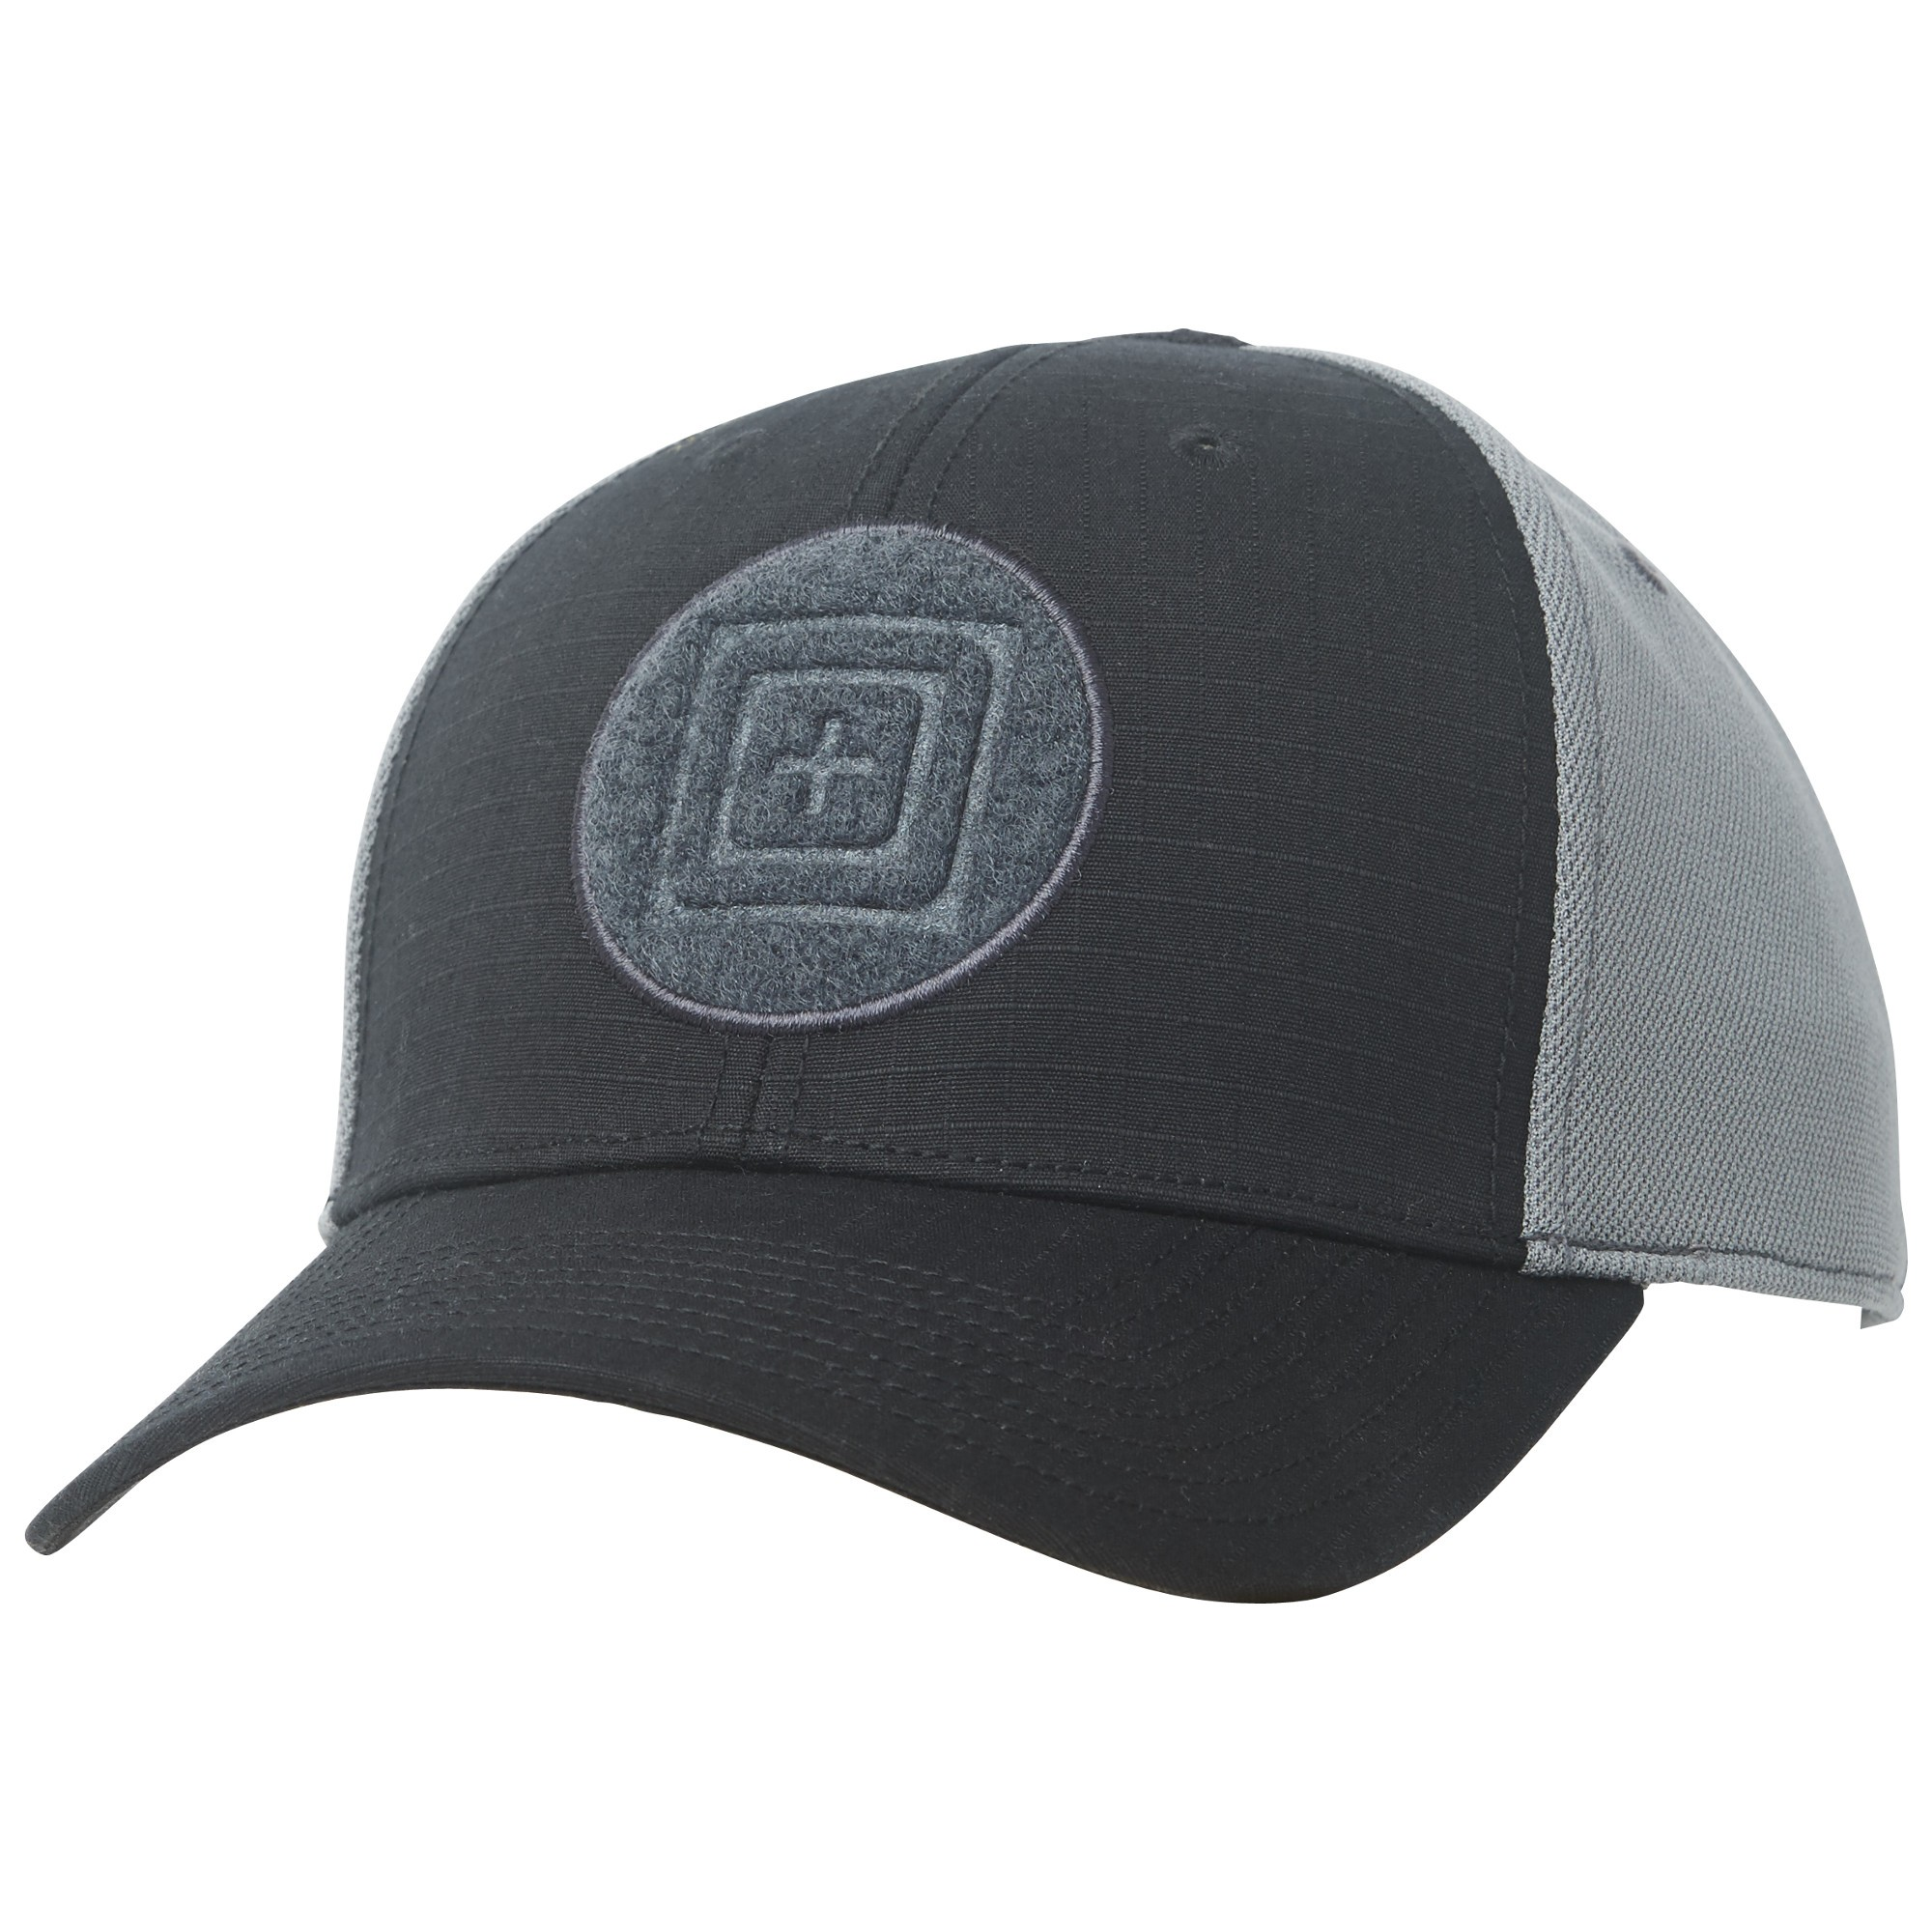 כובע טקטי שחור 5.11 DOWNRANGE CAP Black